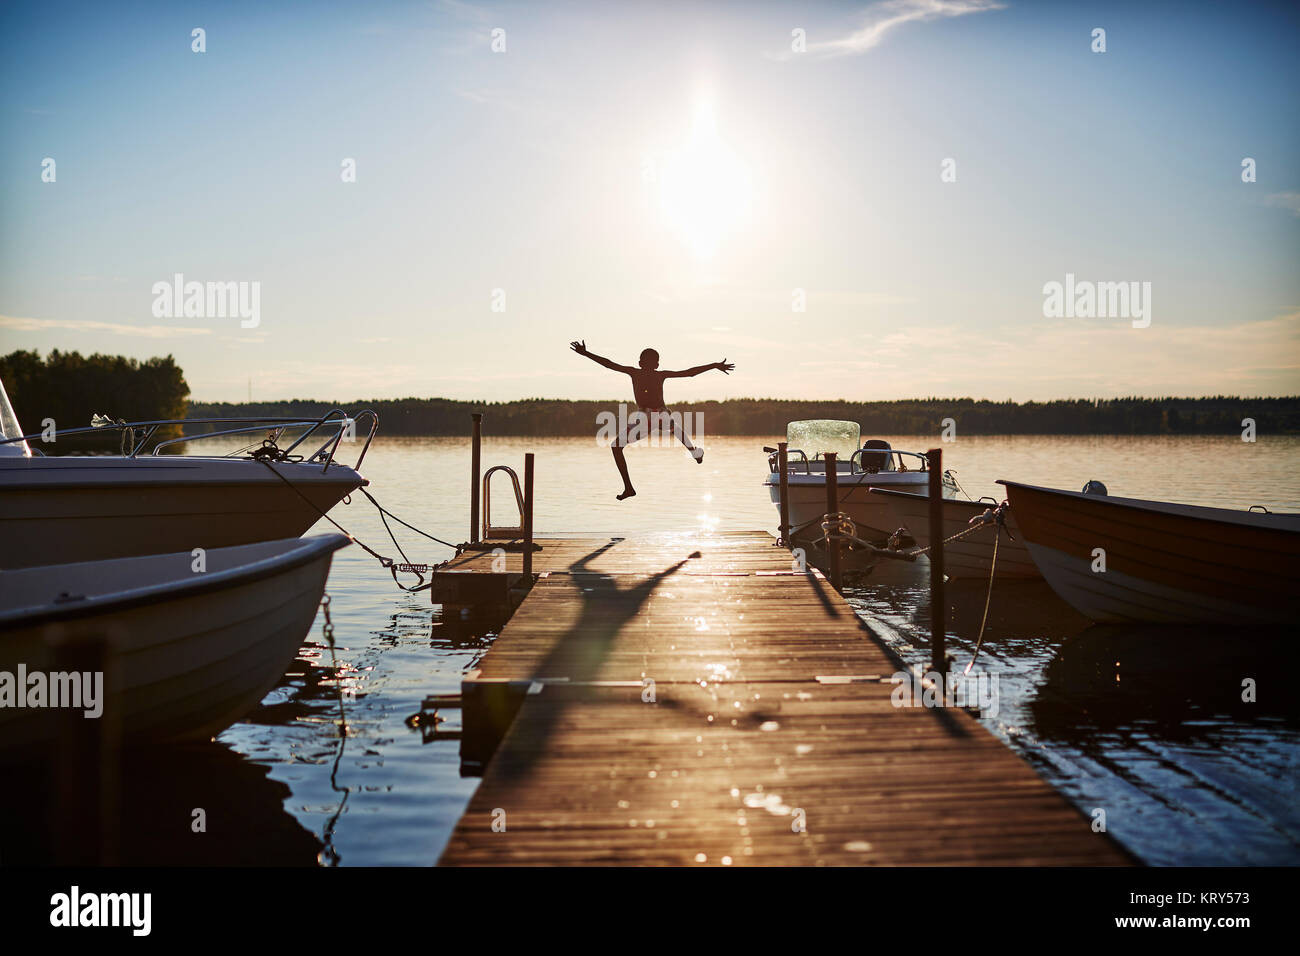 Boy jumping on a pier - Stock Image